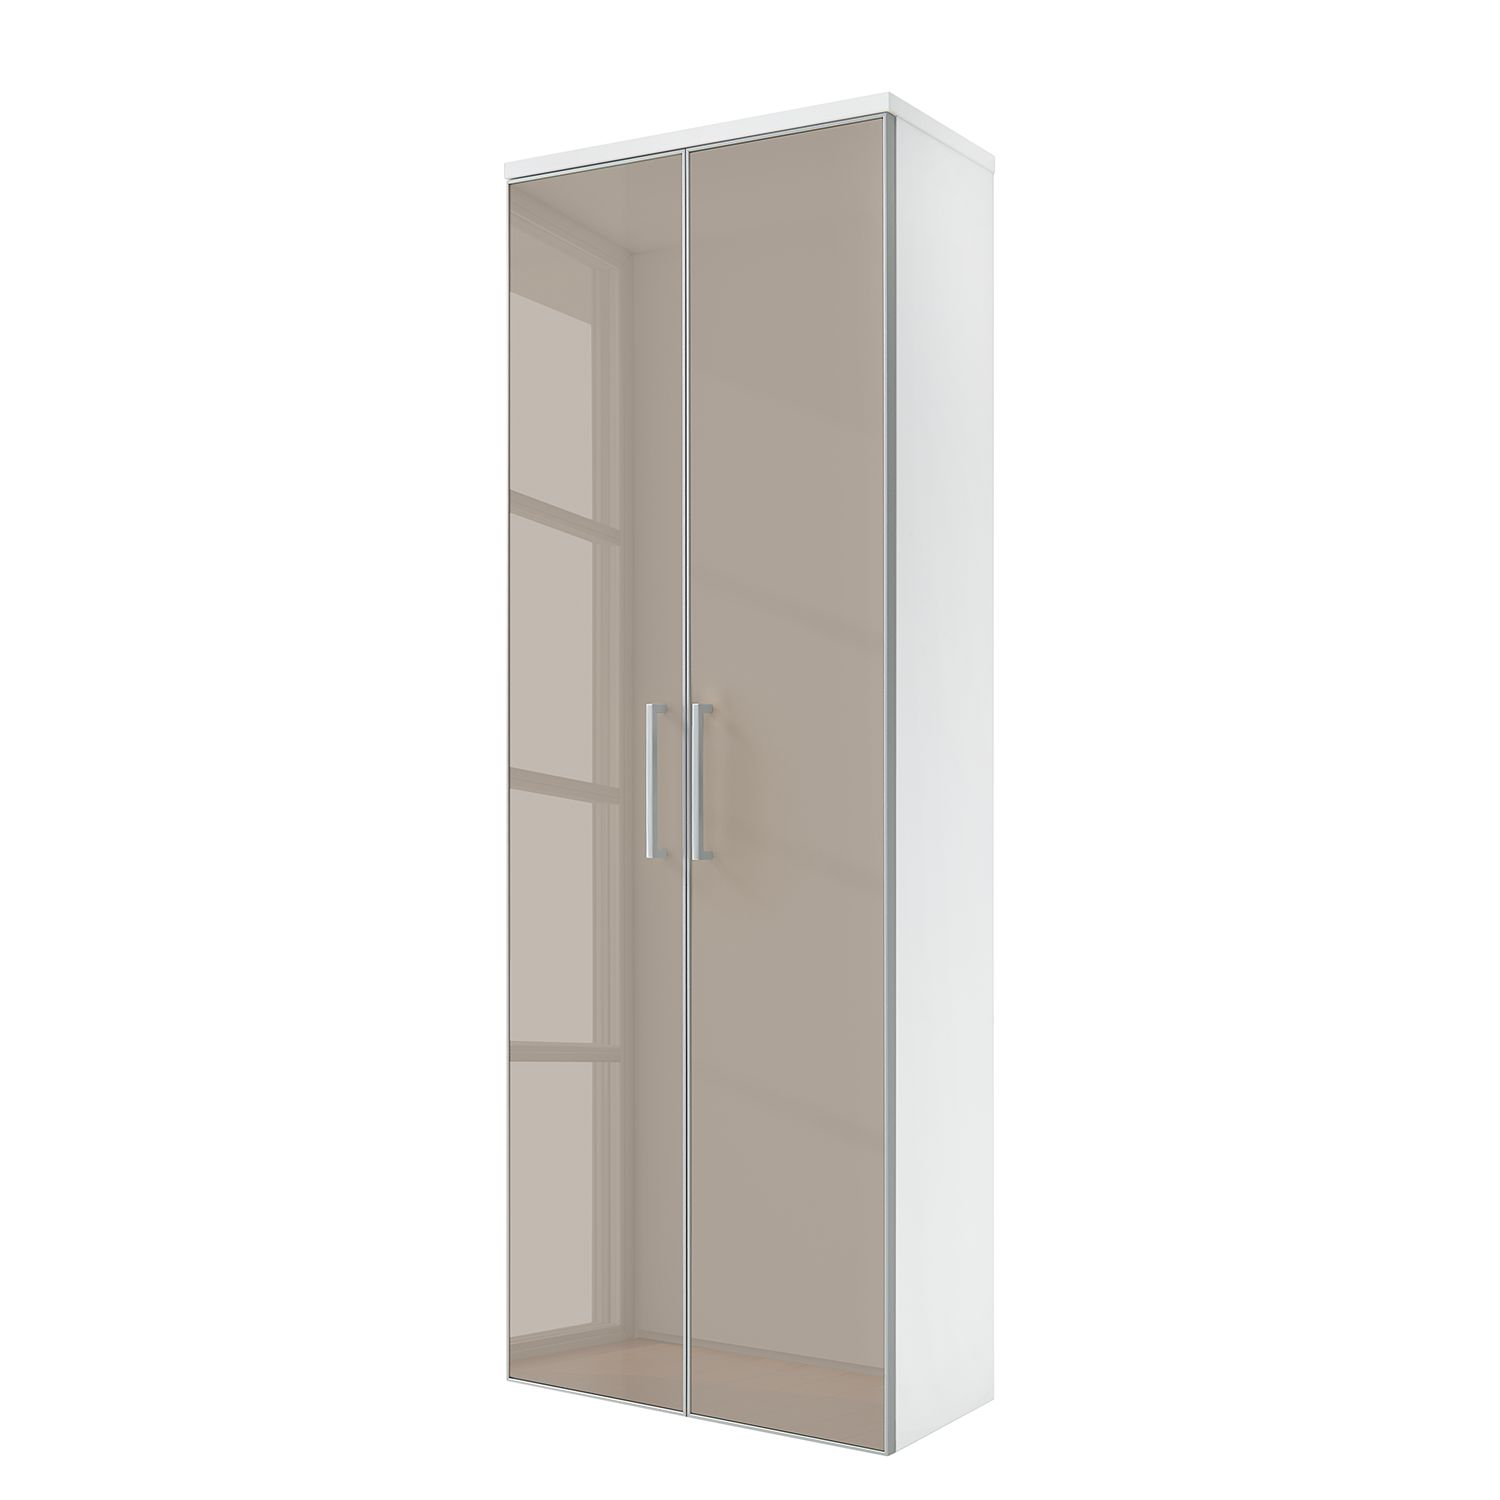 Armoire murale Alavere - Taupe / Blanc, Voss